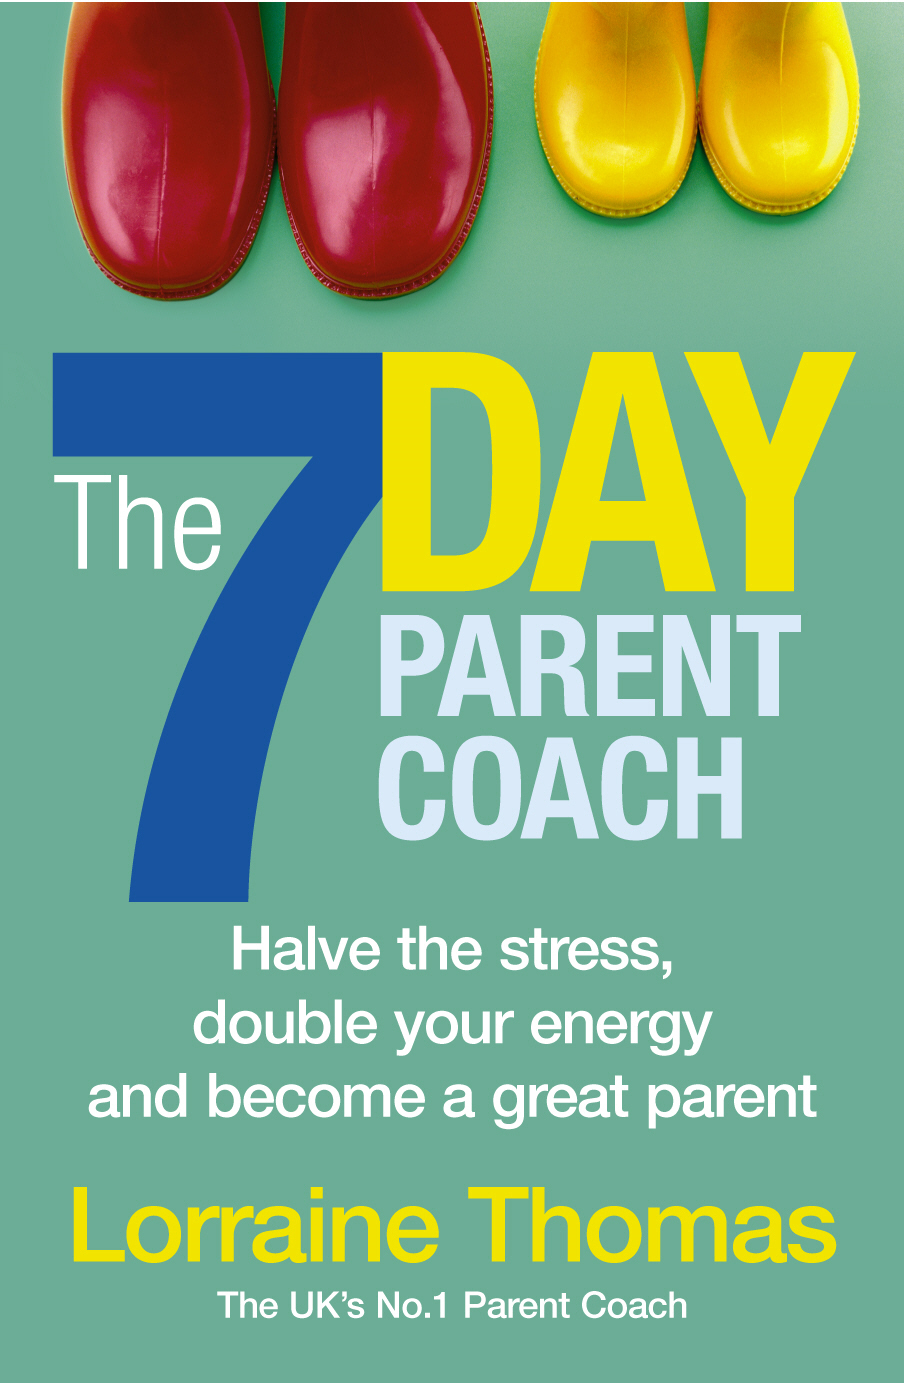 The 7 Day Parent Coach Halve the stress,  double your energy and become a great parent